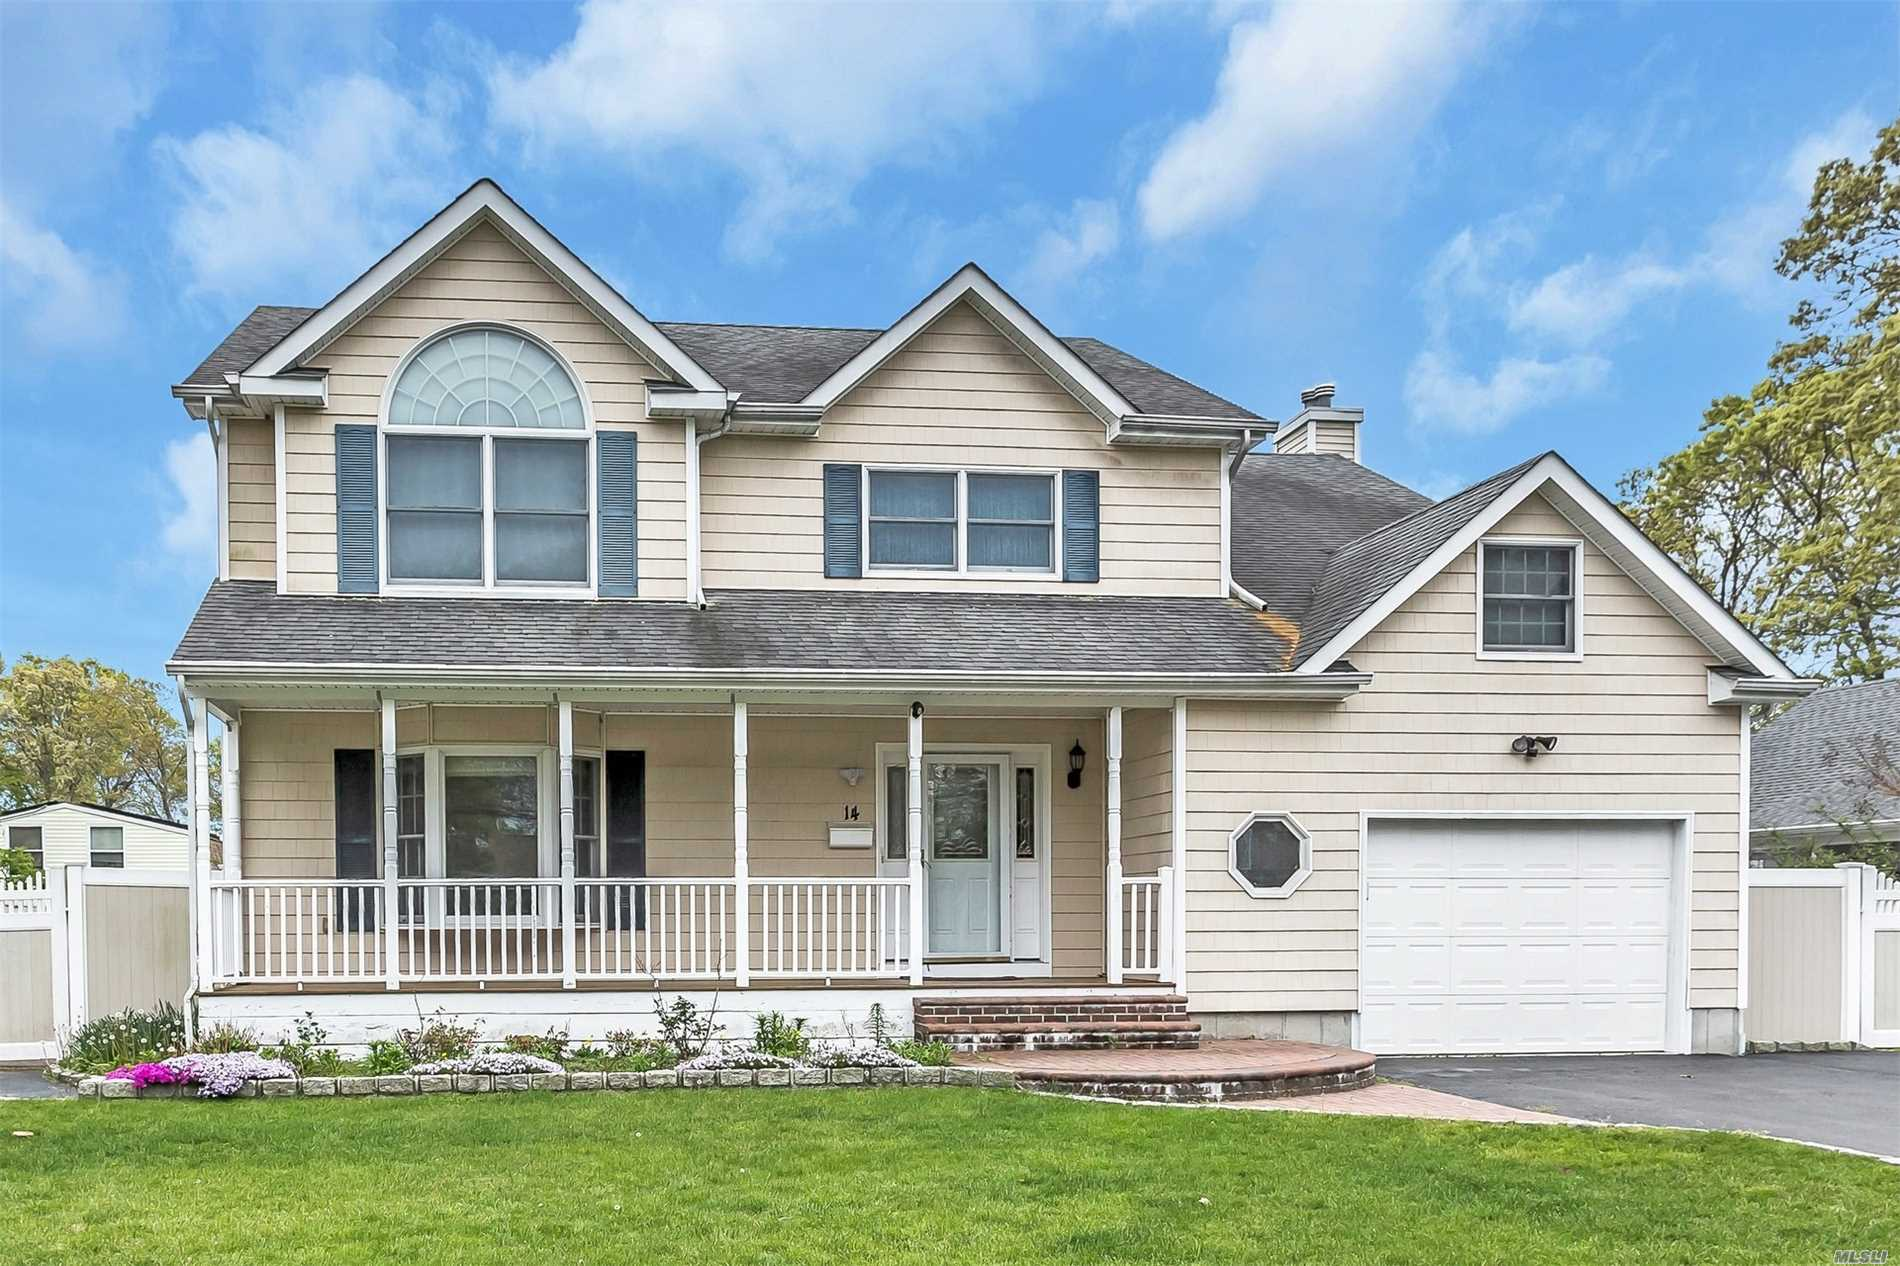 Custom Built Col w/4 Bdrms, 3-1/2 Bths Offers Hw Floors, Huge Eik W/Island, Granite Counter Tops And SS Appliances leading to A Formal Dining Rm, Fam Rm W/Fp, Mstr Suite W/Extra Lrg Jacuzzi Mstr Bth, Full Fin Bsmnt W/Ose, Frnt Porch, Beautiful Yard W/Ag Pool, Fully Pvc Fenced, Ig Sprinklers, 1-1/2 Gar. Anderson Windows Throughout, 2 Zone CAC And Much More!